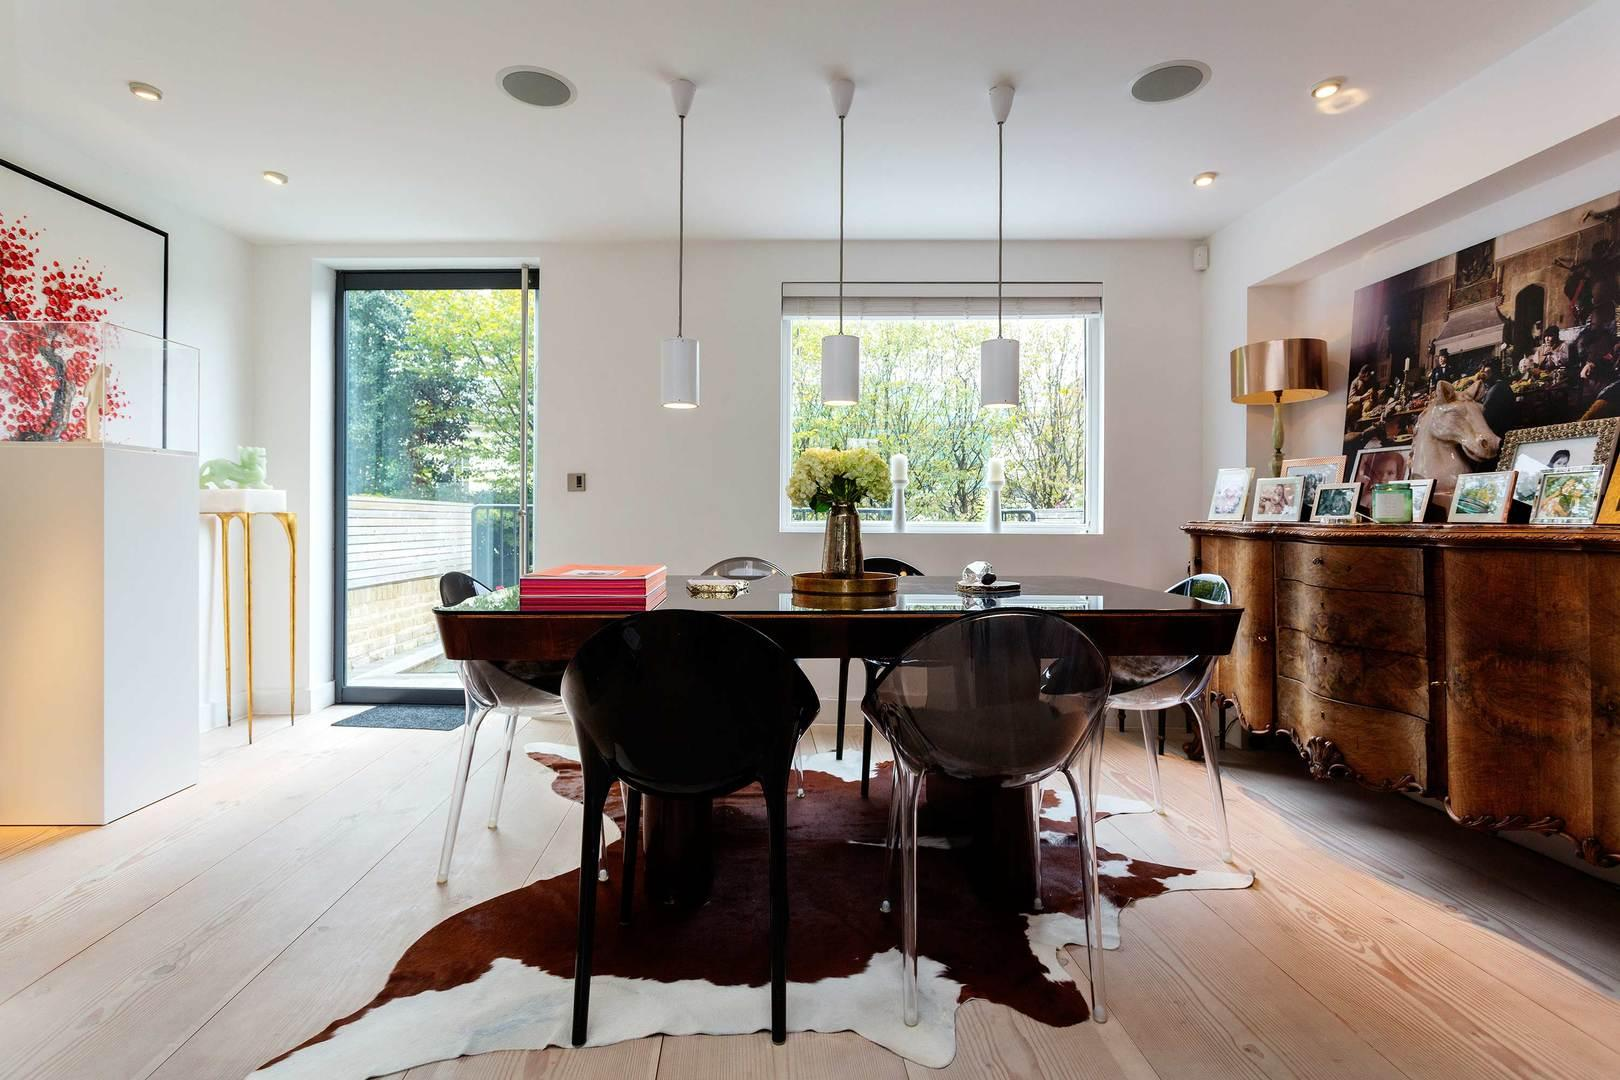 Property Image 2 - Large Contemporary House, walk to Regents Park